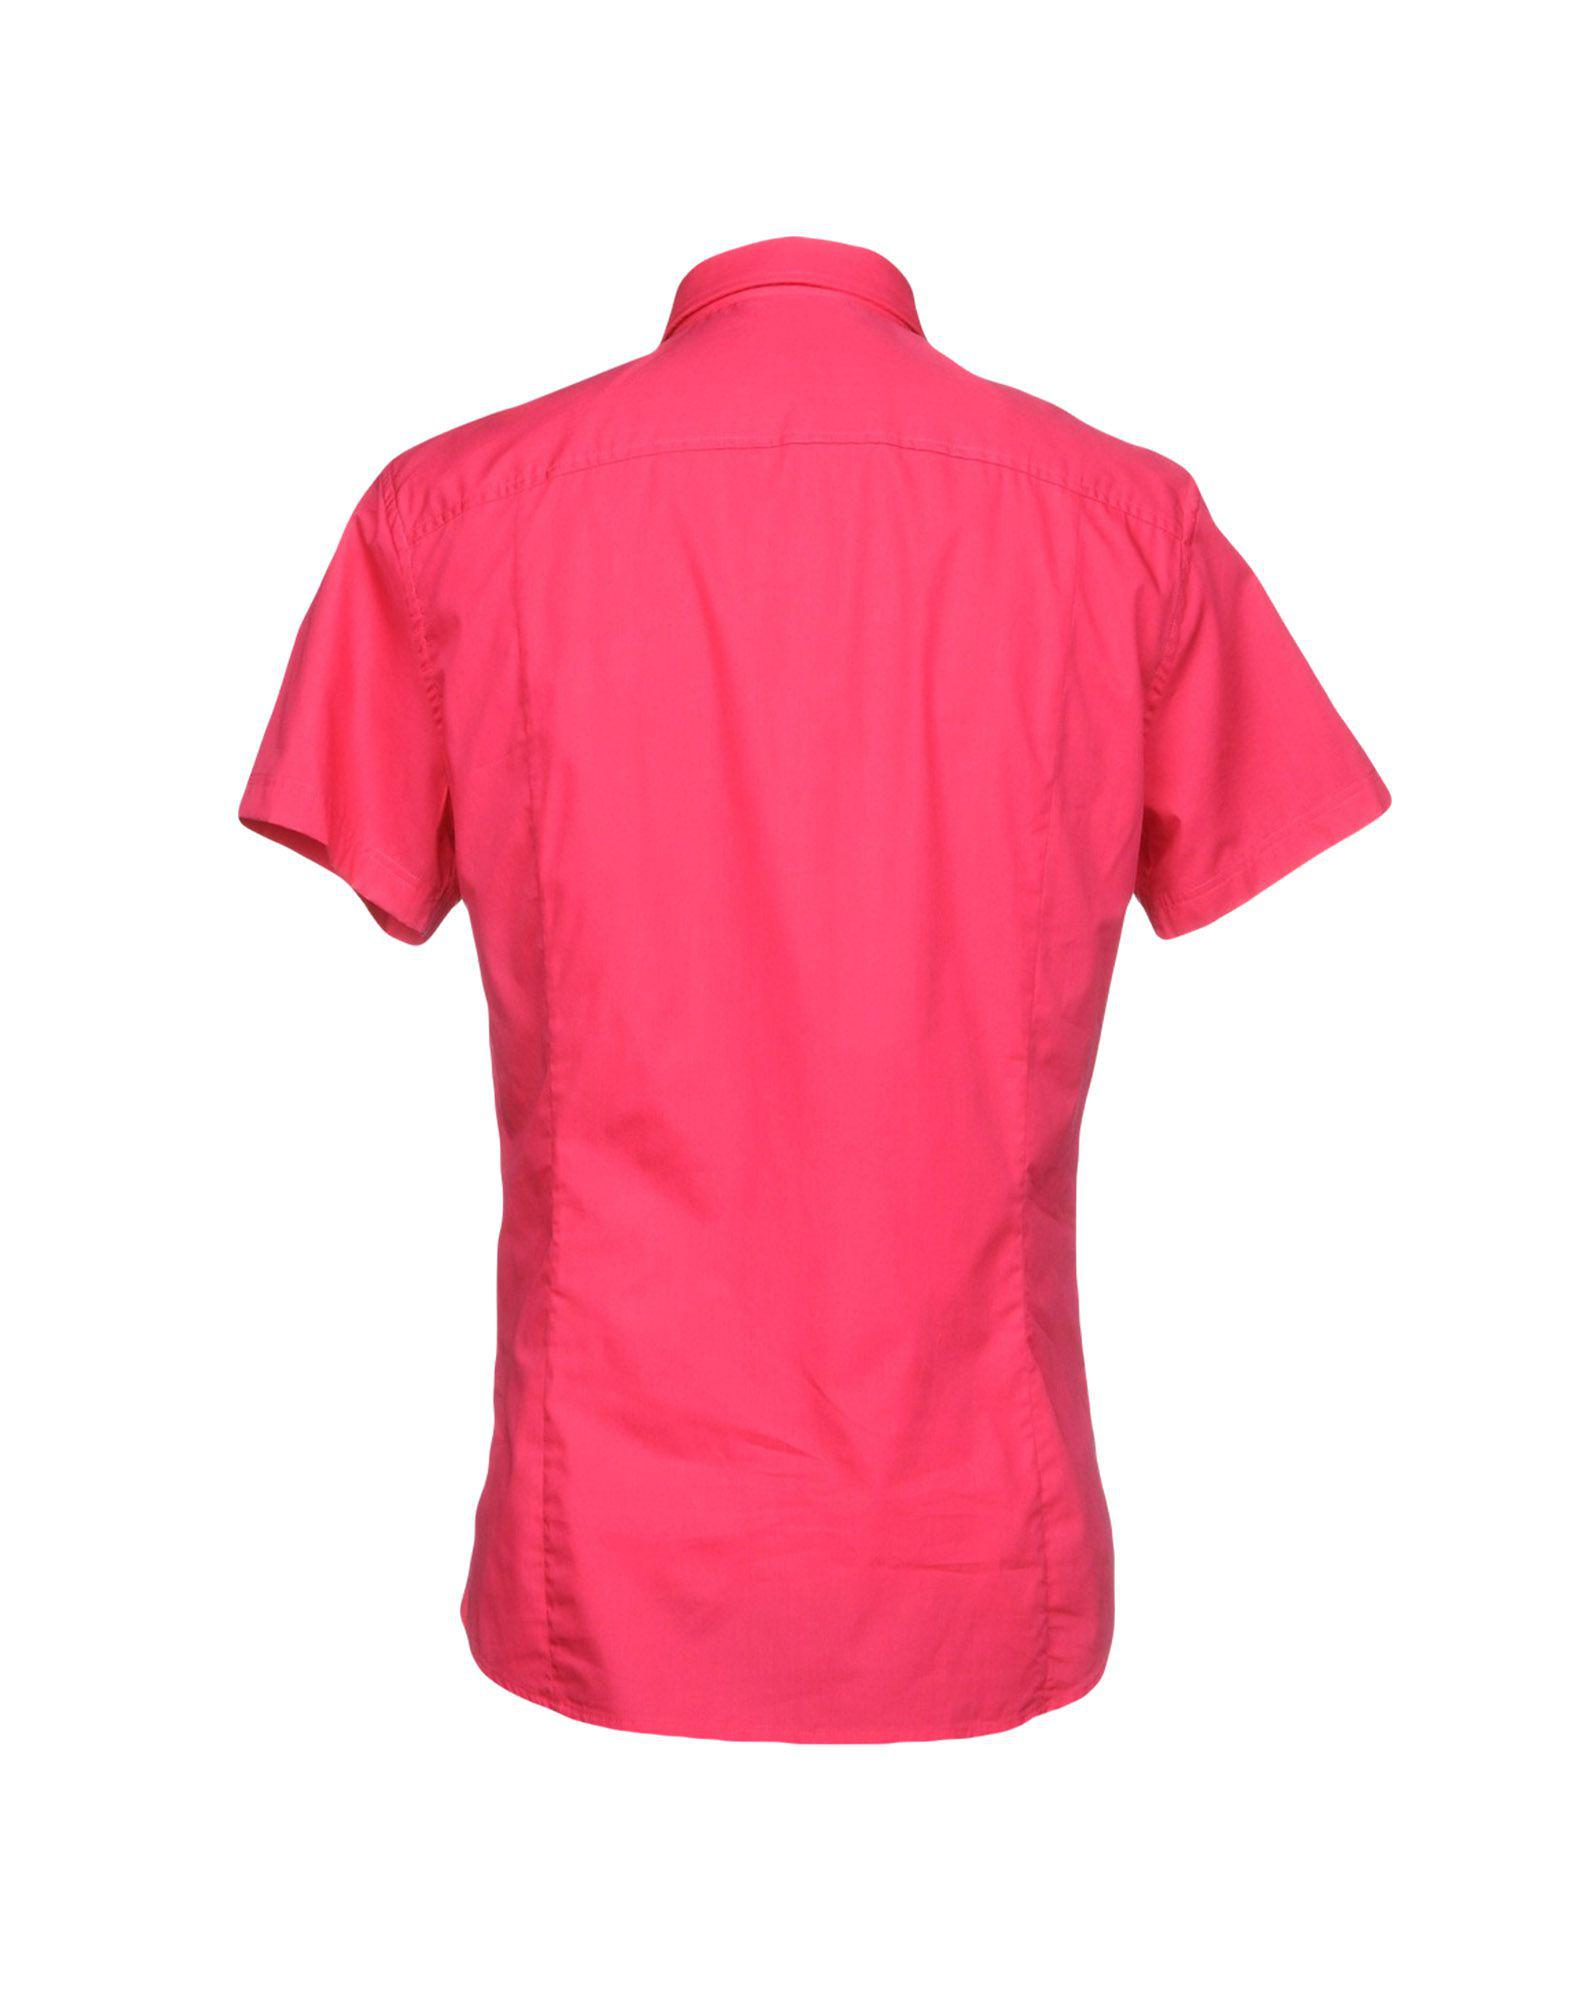 Versace Jeans Couture Cotton Shirt in Fuchsia (Pink) for Men